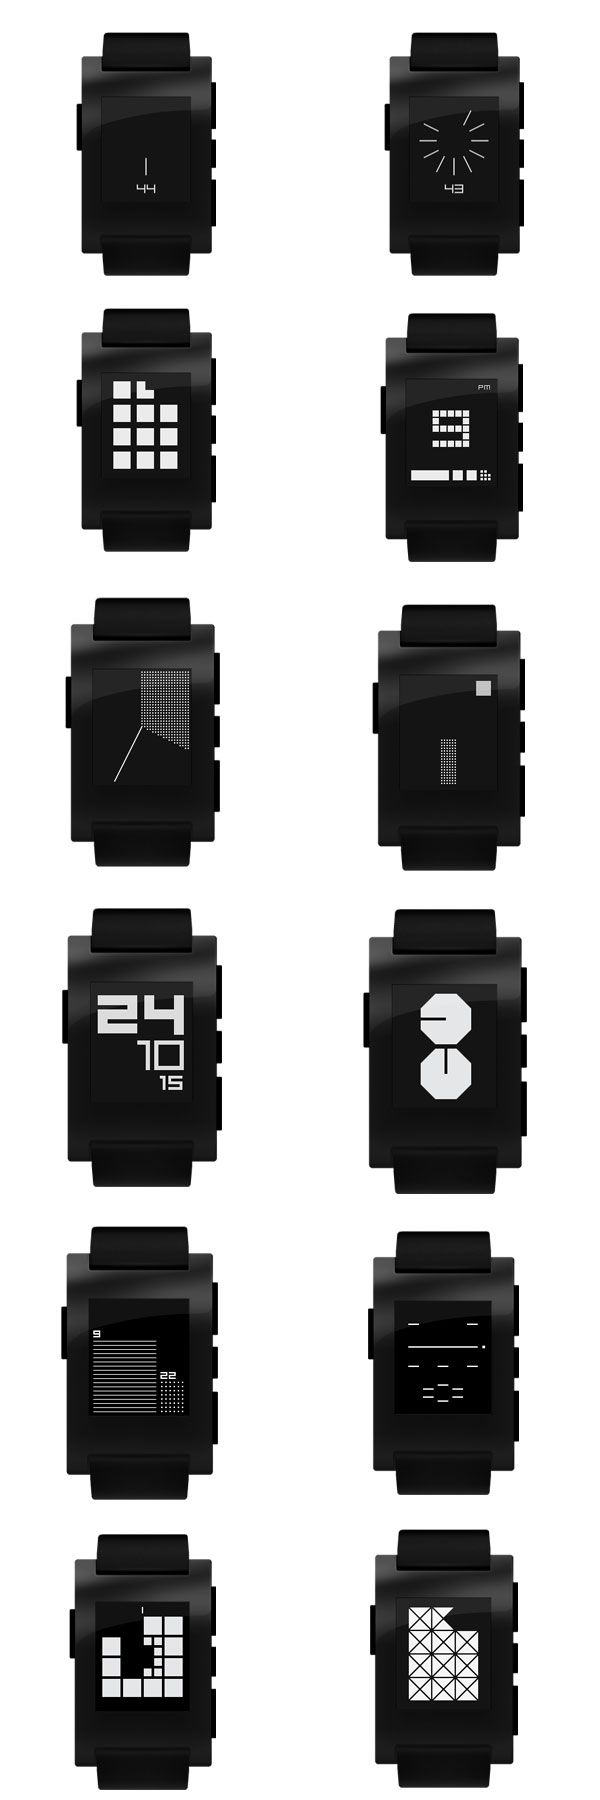 "The ""ttmm"" collection of wristwatch apps was designed for specifically for smartwatches with 144×168 pixel screens such as Pebble and Kreyos. 15 different face options give the wearer a multitude of stylized options, each with its own puzzling way of displaying the time. Available in the Android Market, you can upload the collection directly via the Pebble app and keep your watch-face fresh all year round"